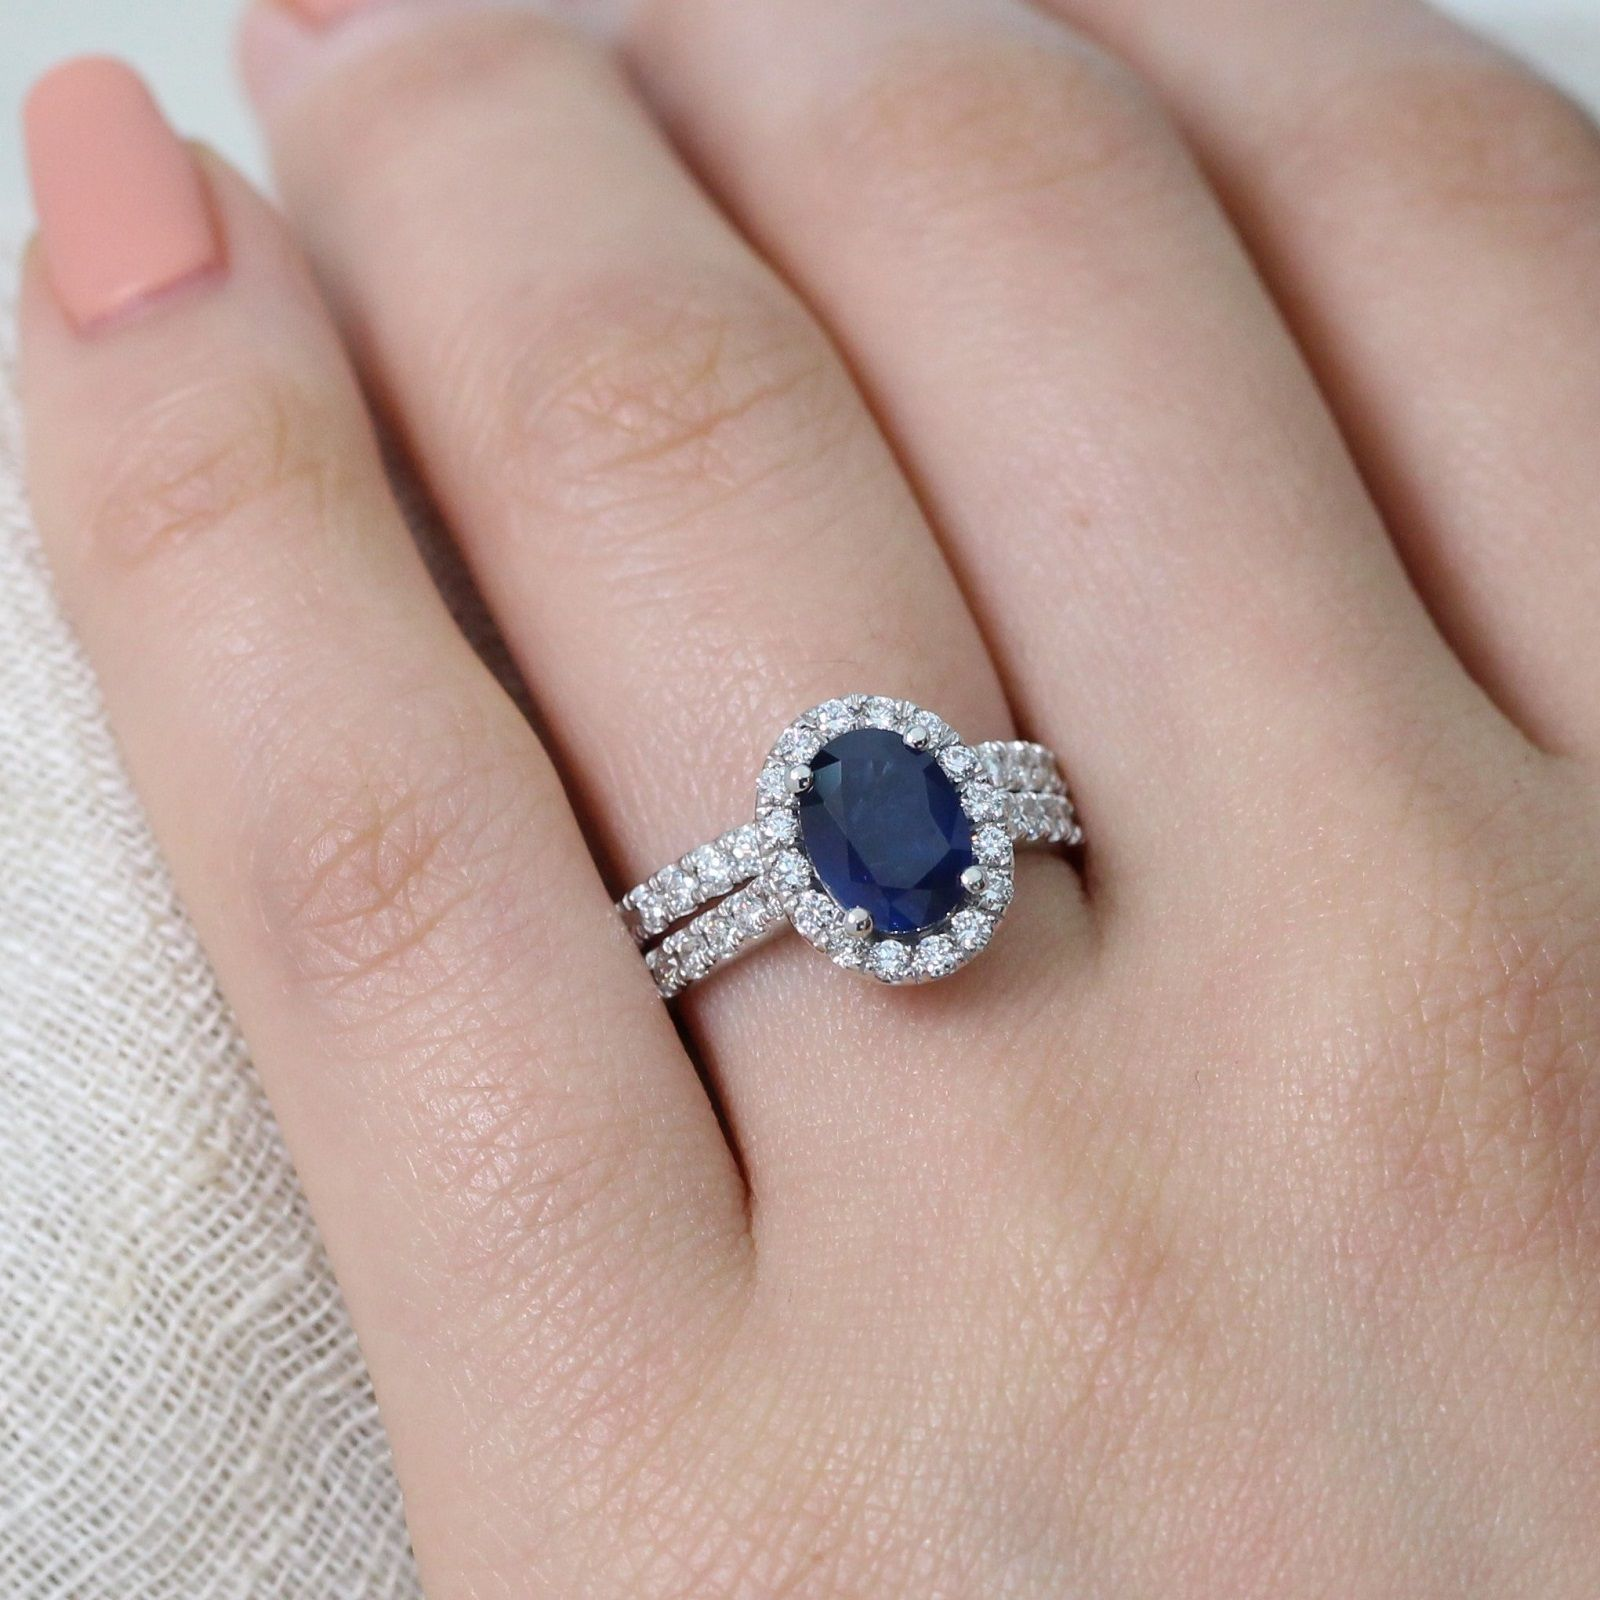 A bridal set inspired by Princess Diana's sapphire